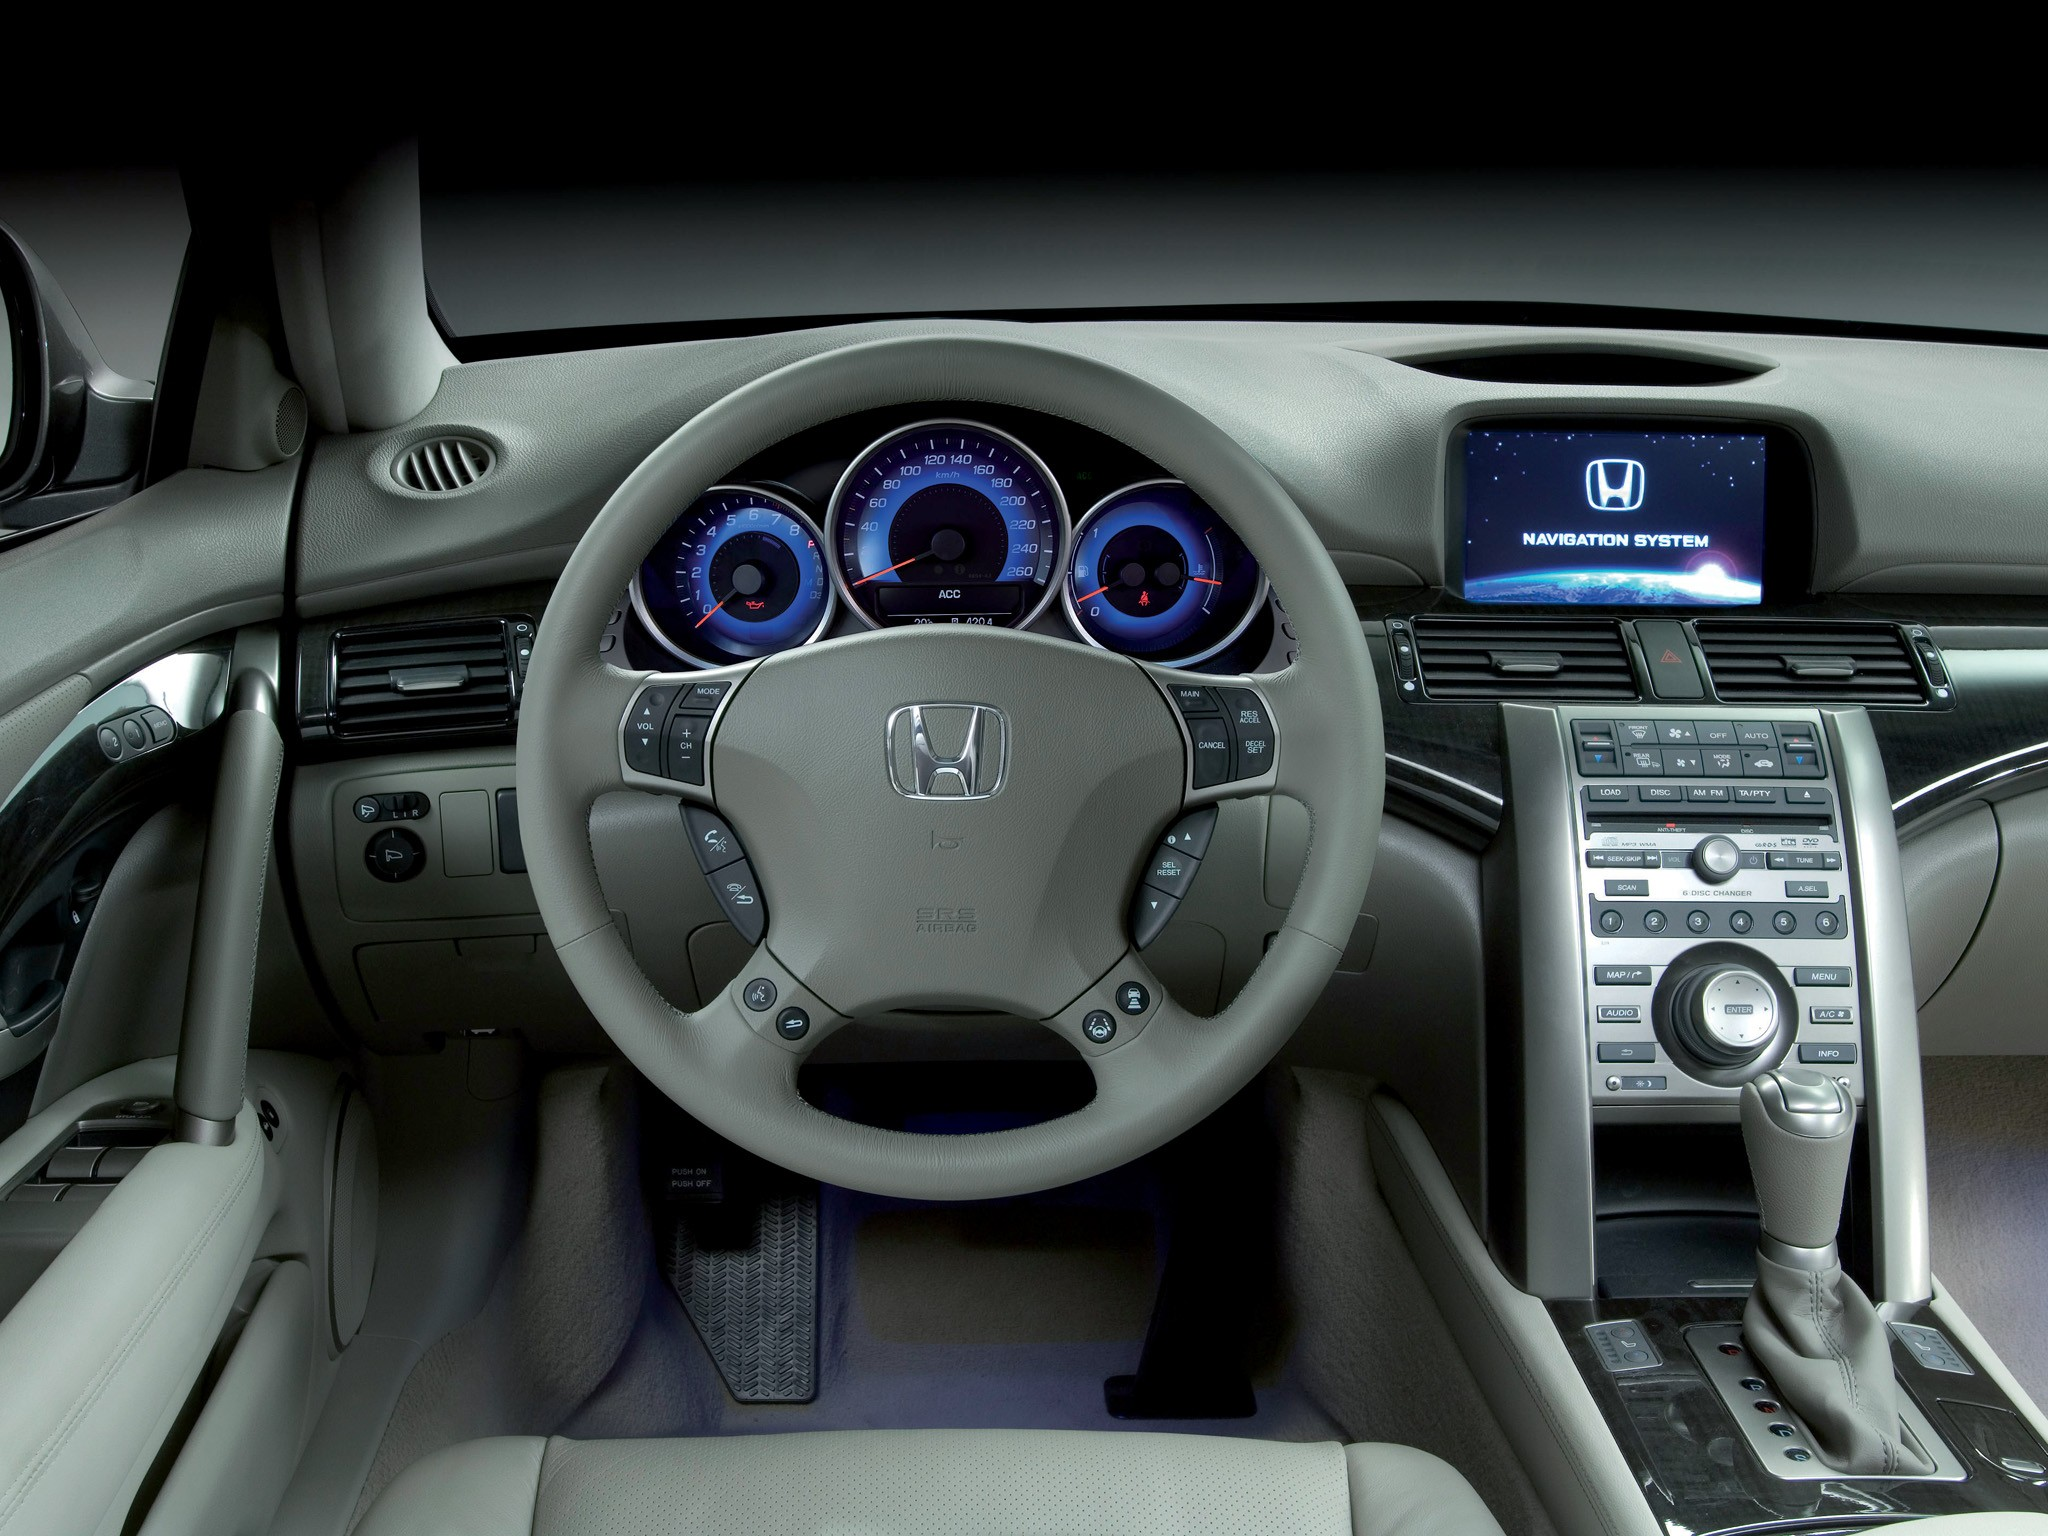 Honda Civic 2017 Interior >> HONDA Legend specs - 2009, 2010, 2011, 2012 - autoevolution